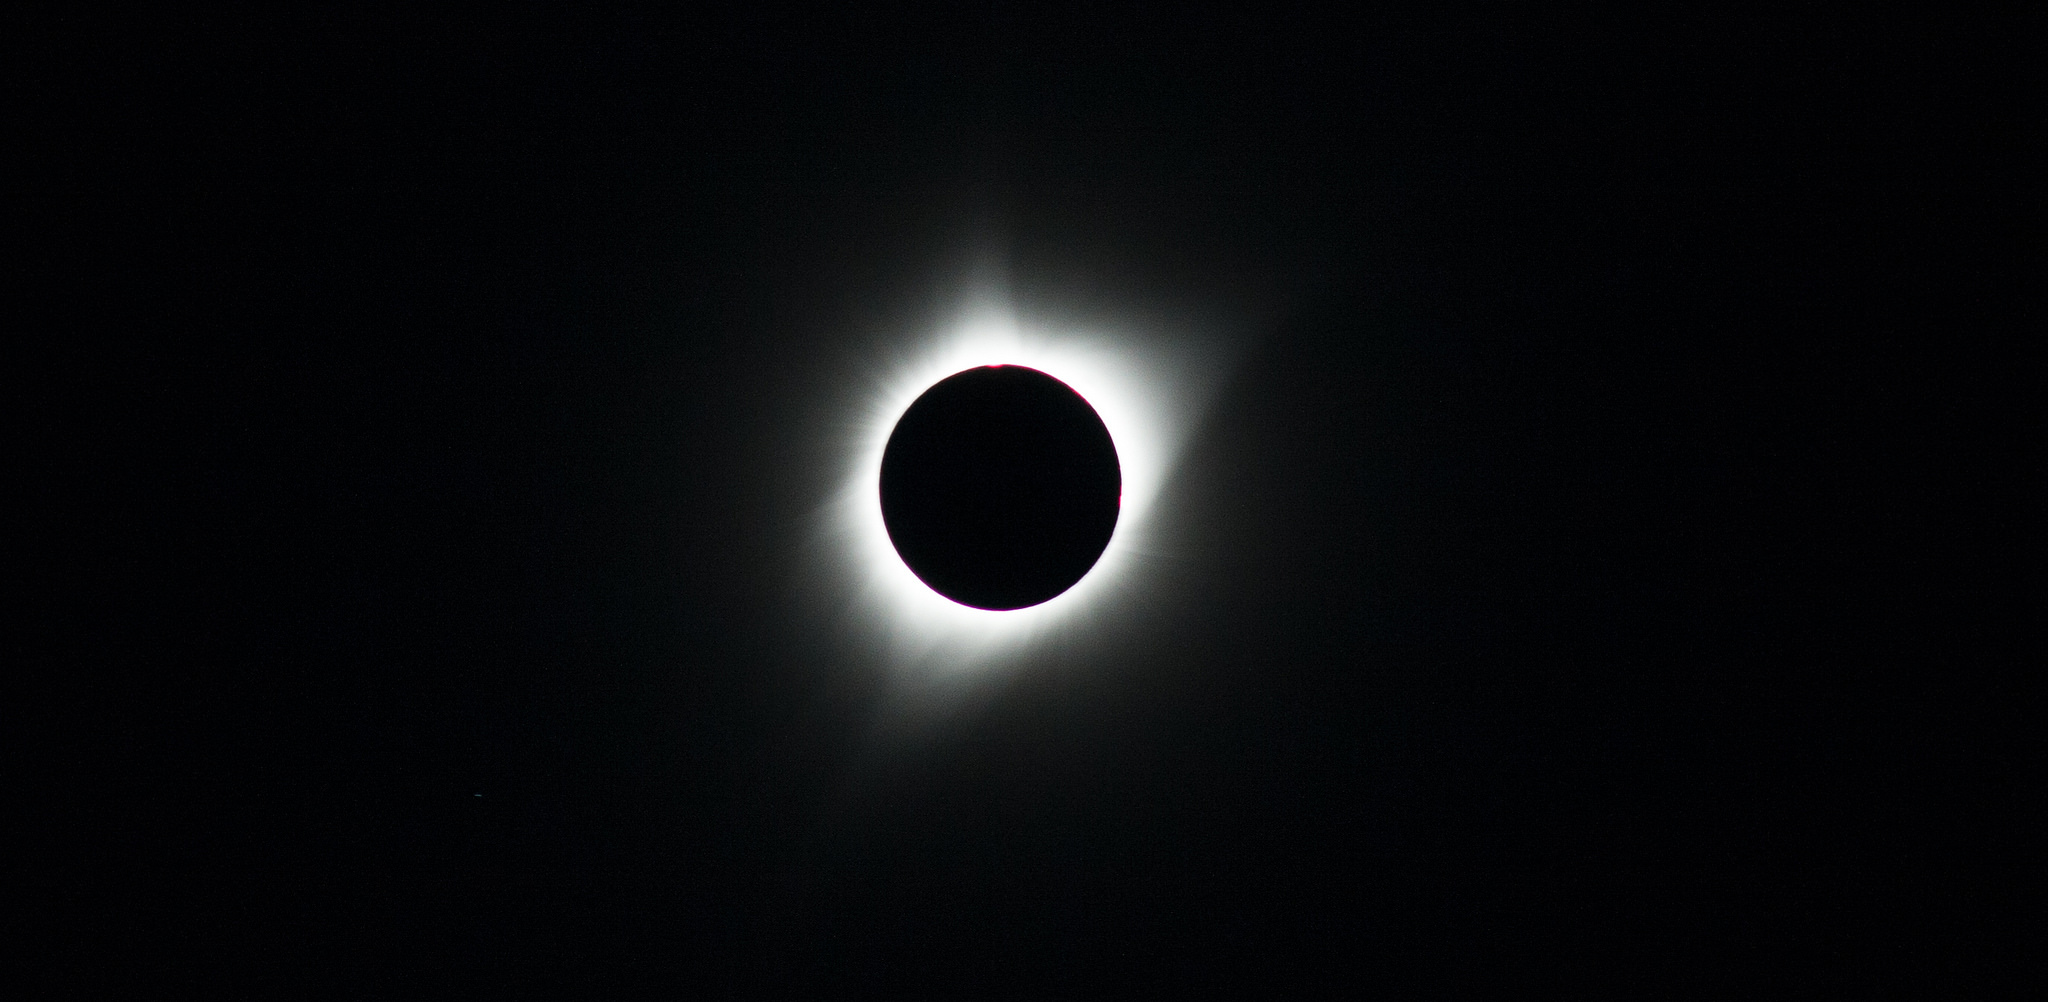 The total solar eclipse, as seen from Salem, Oregon.